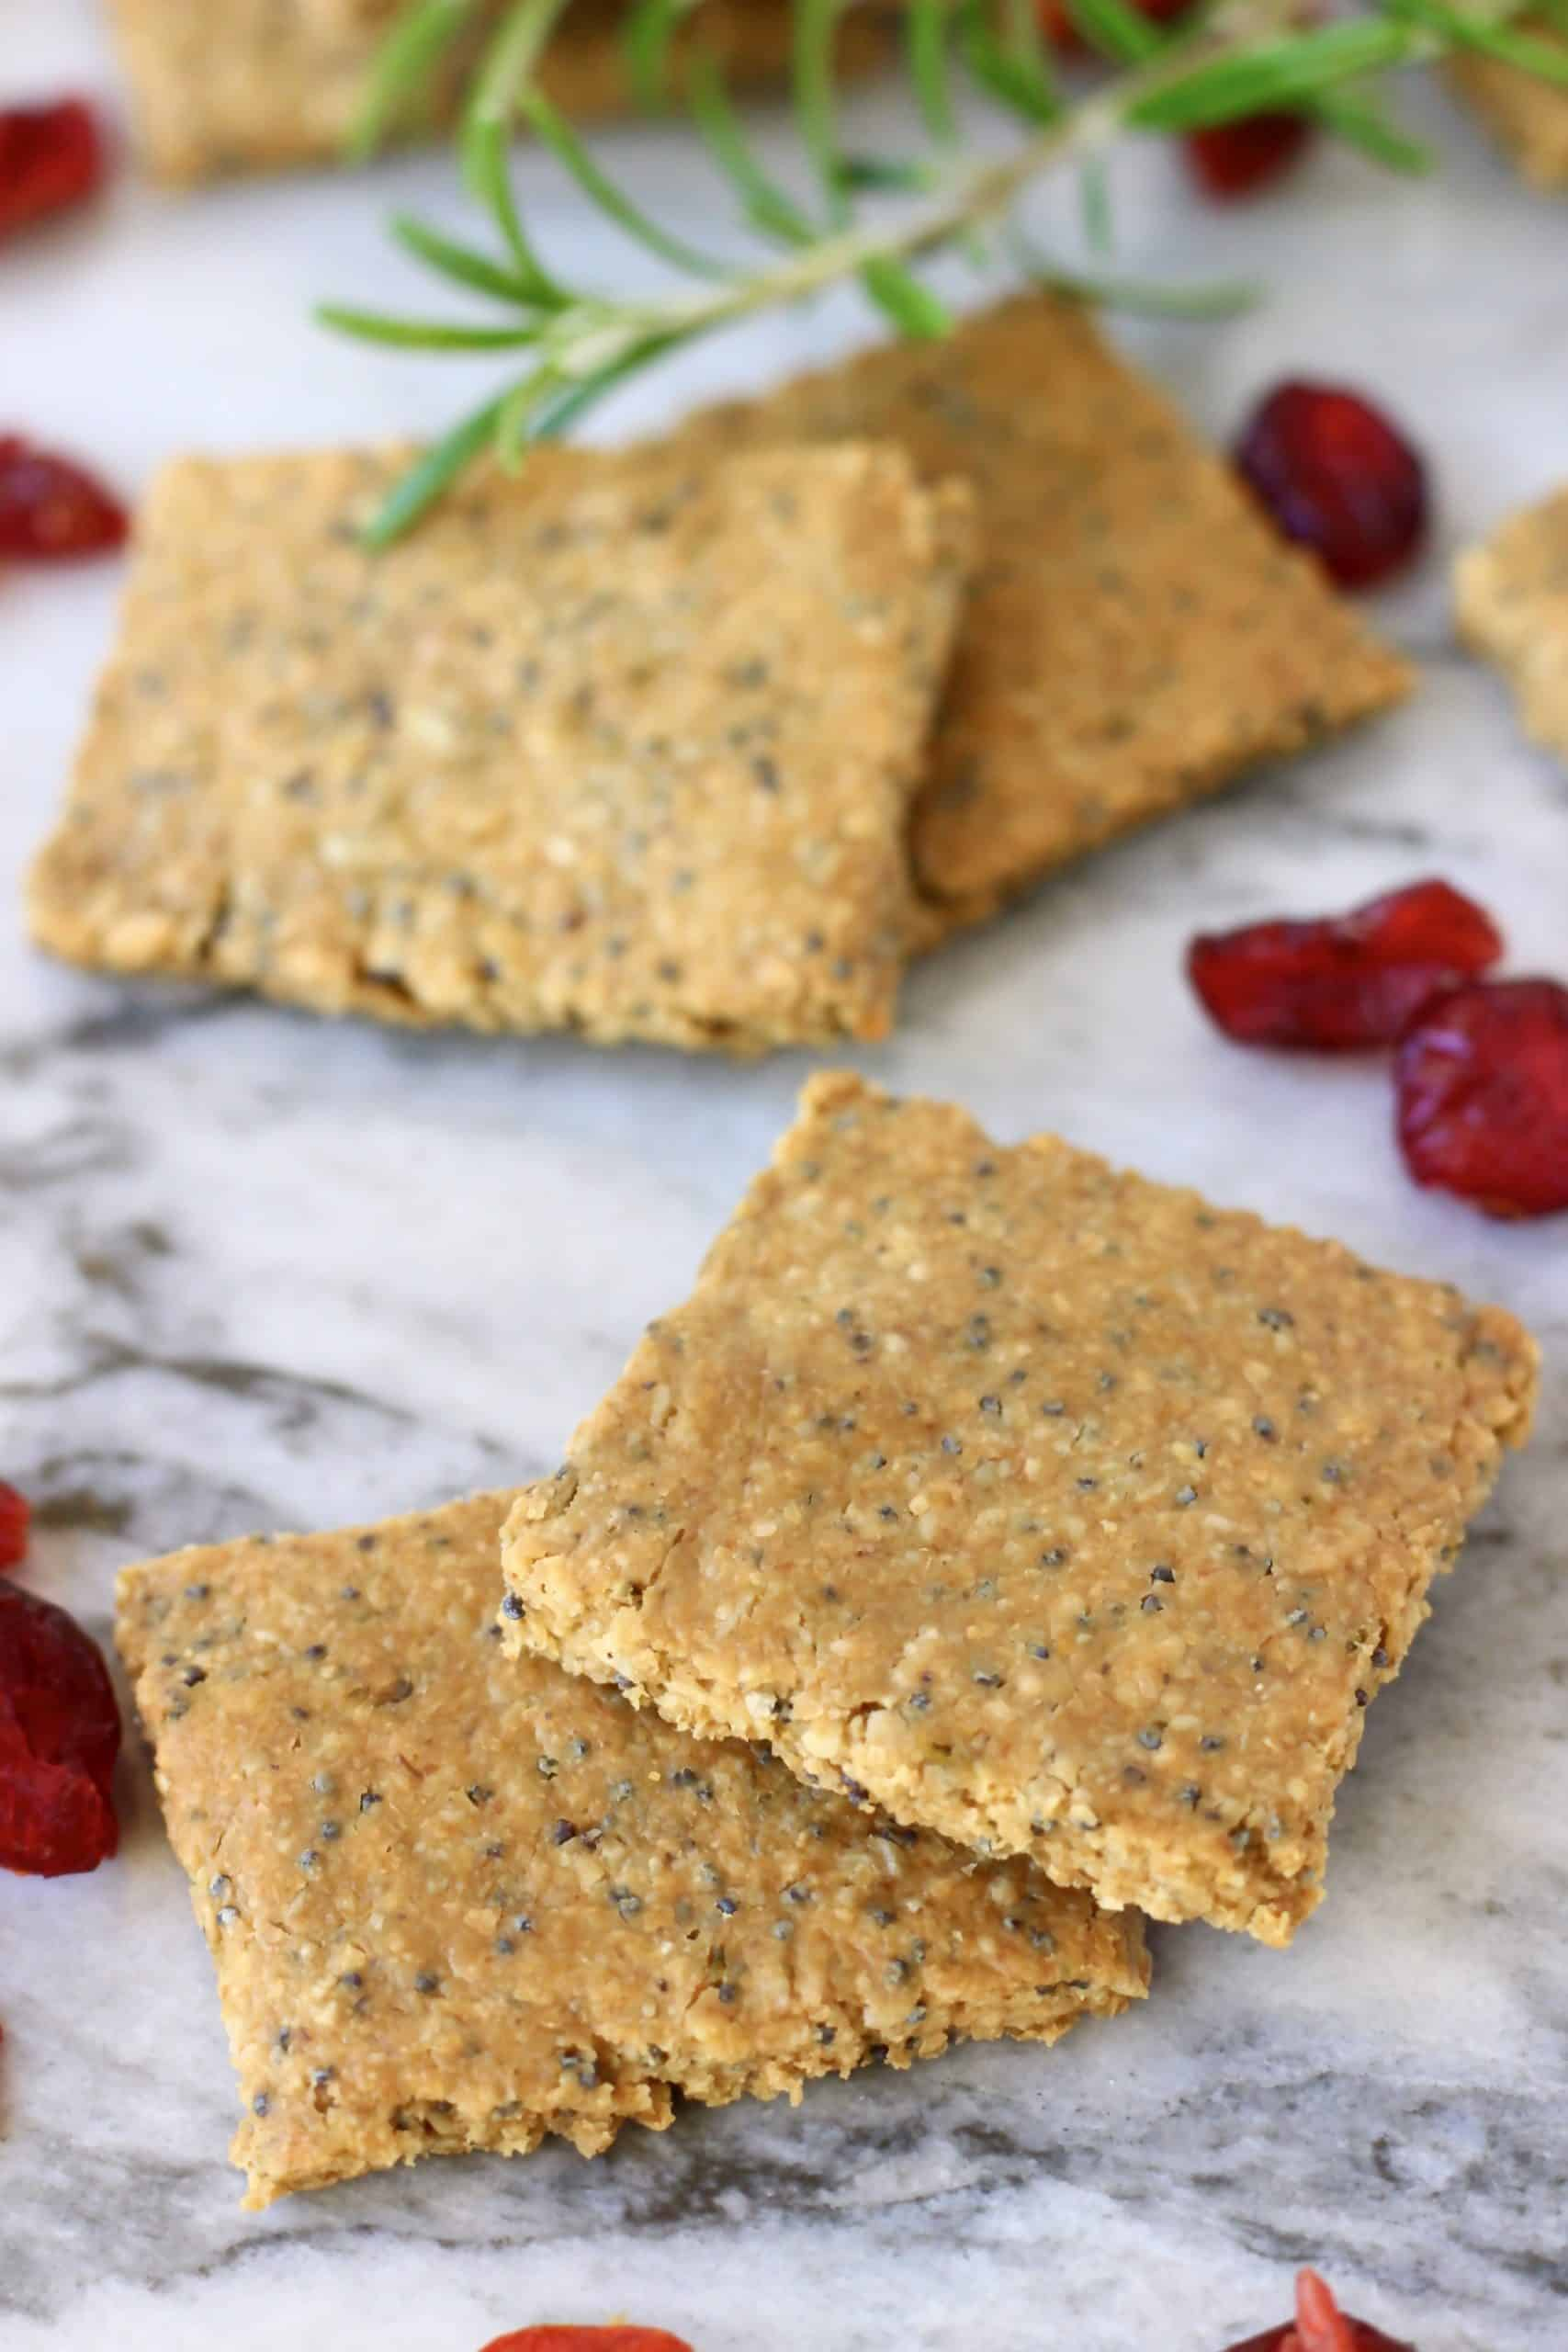 Four gluten-free vegan crackers on a marble background